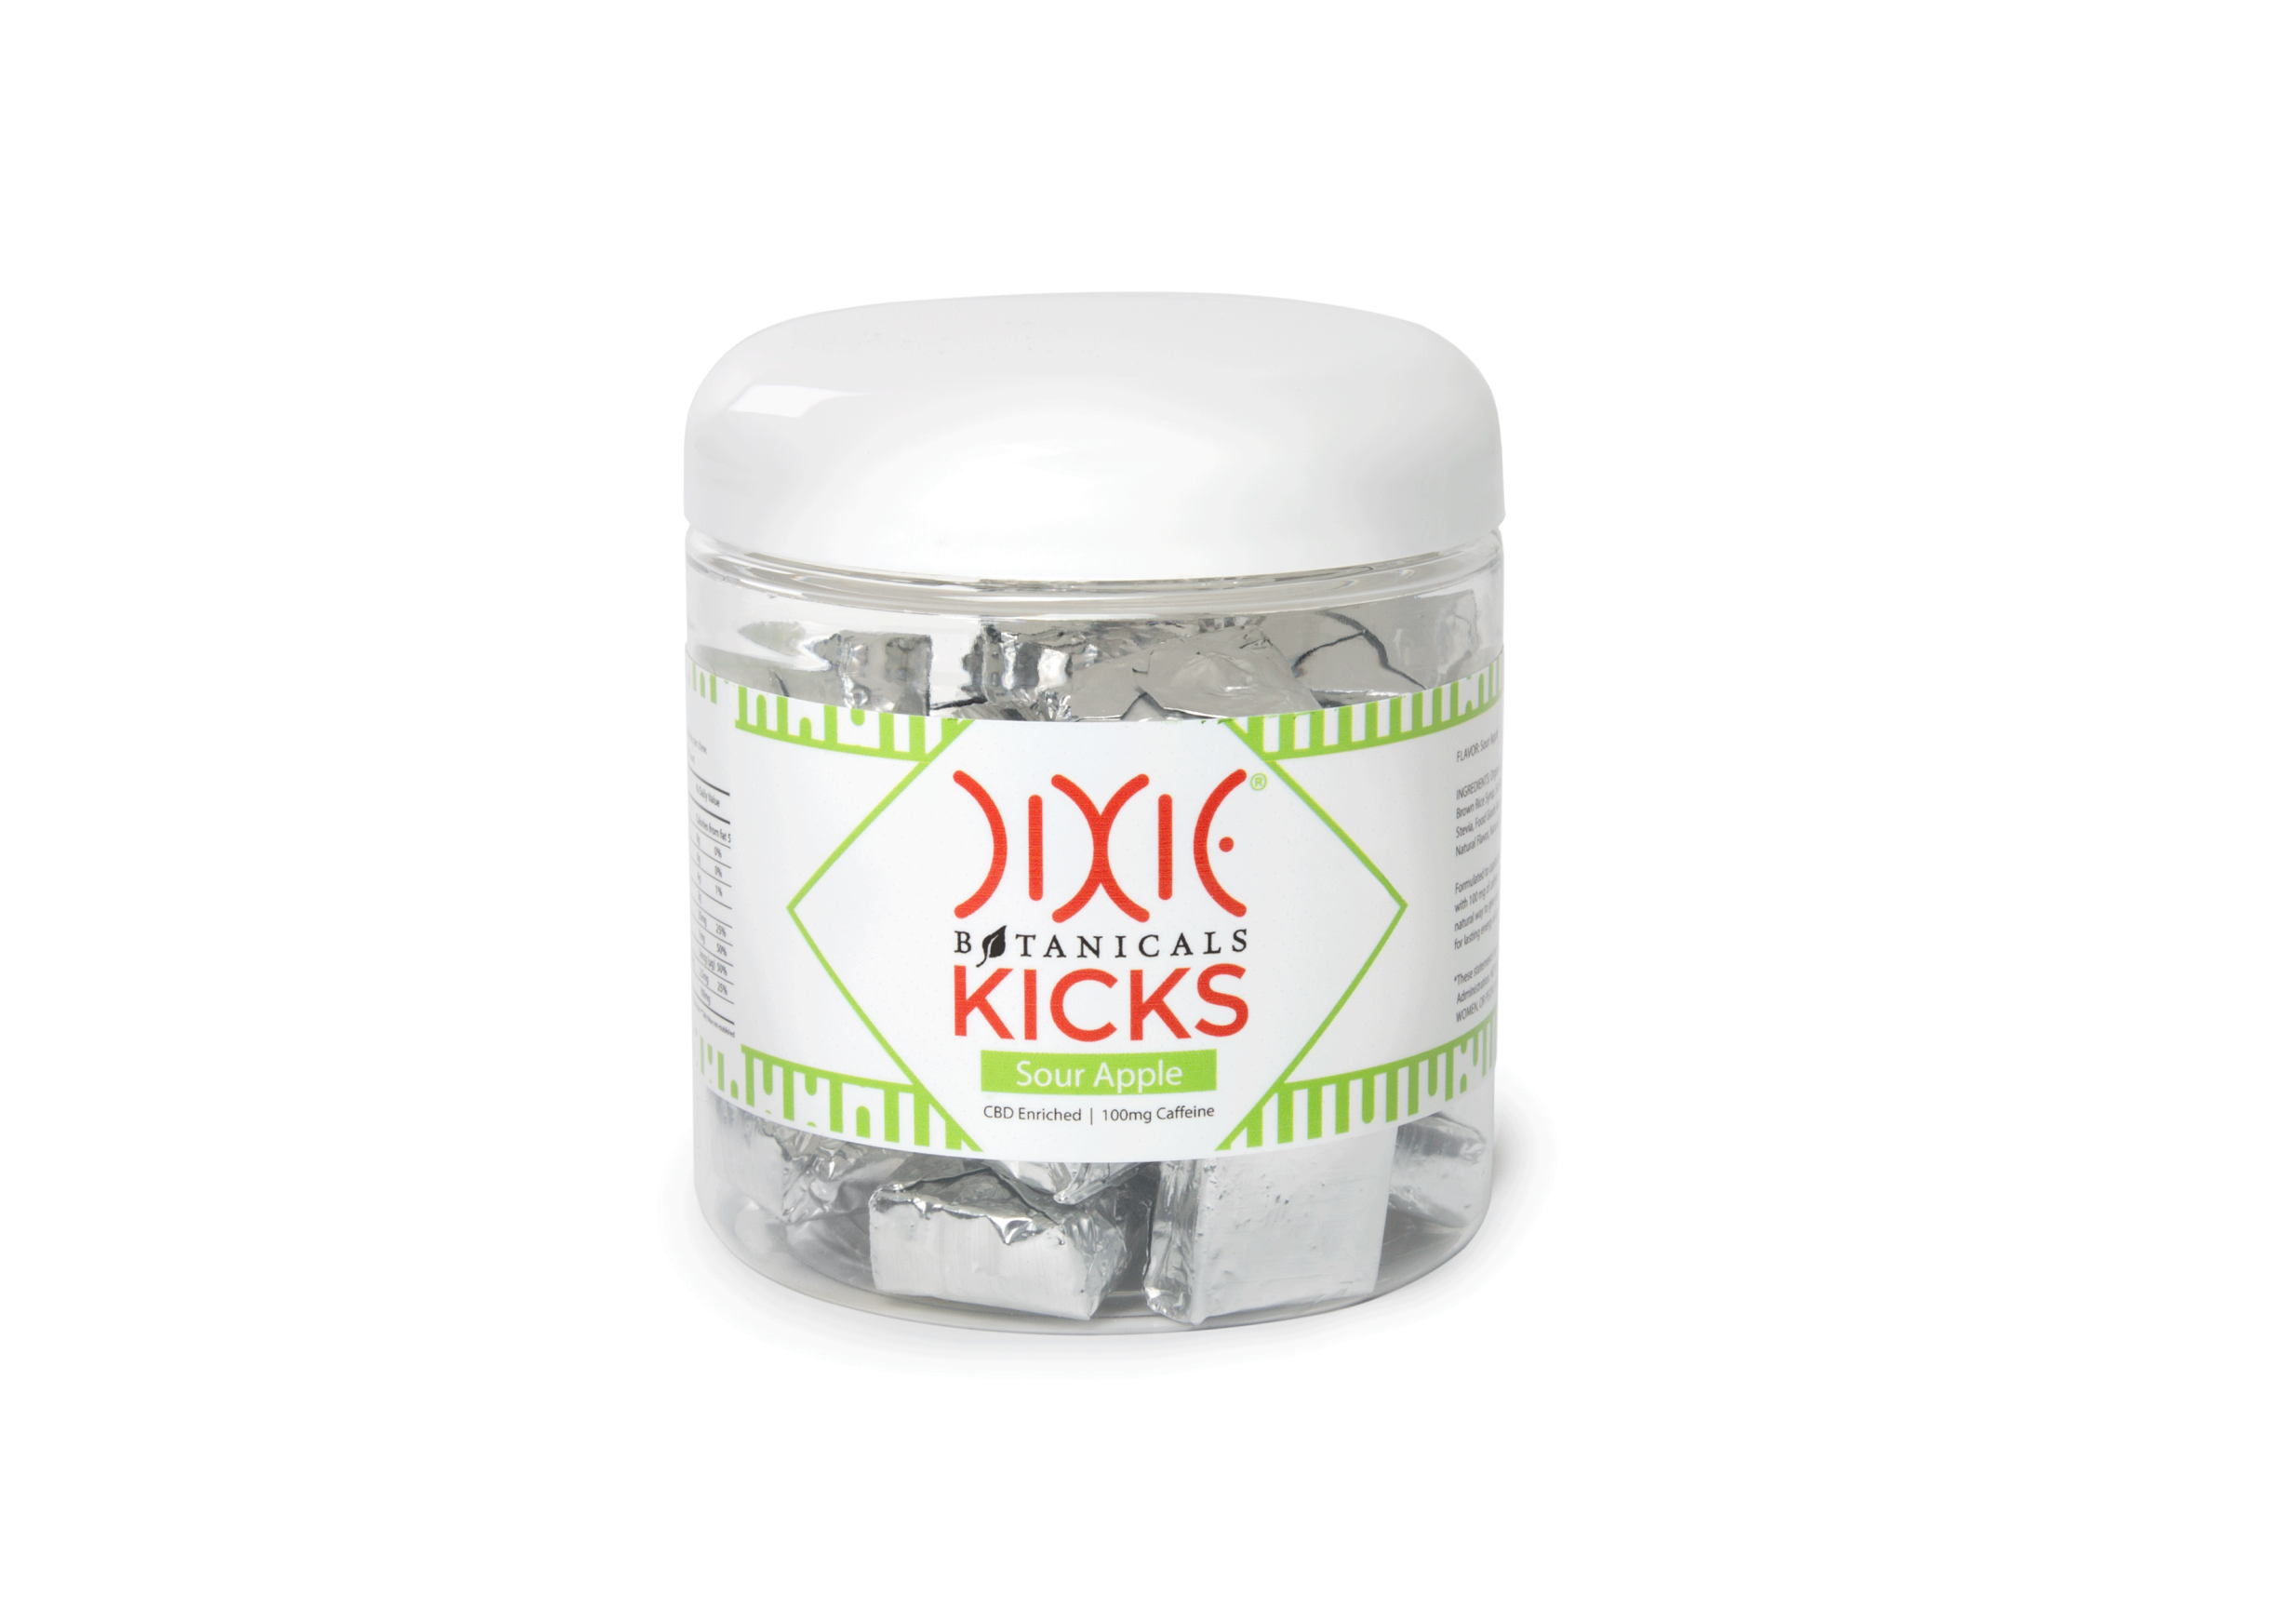 HempMeds Kicks-Sour Apple CBD Edibles